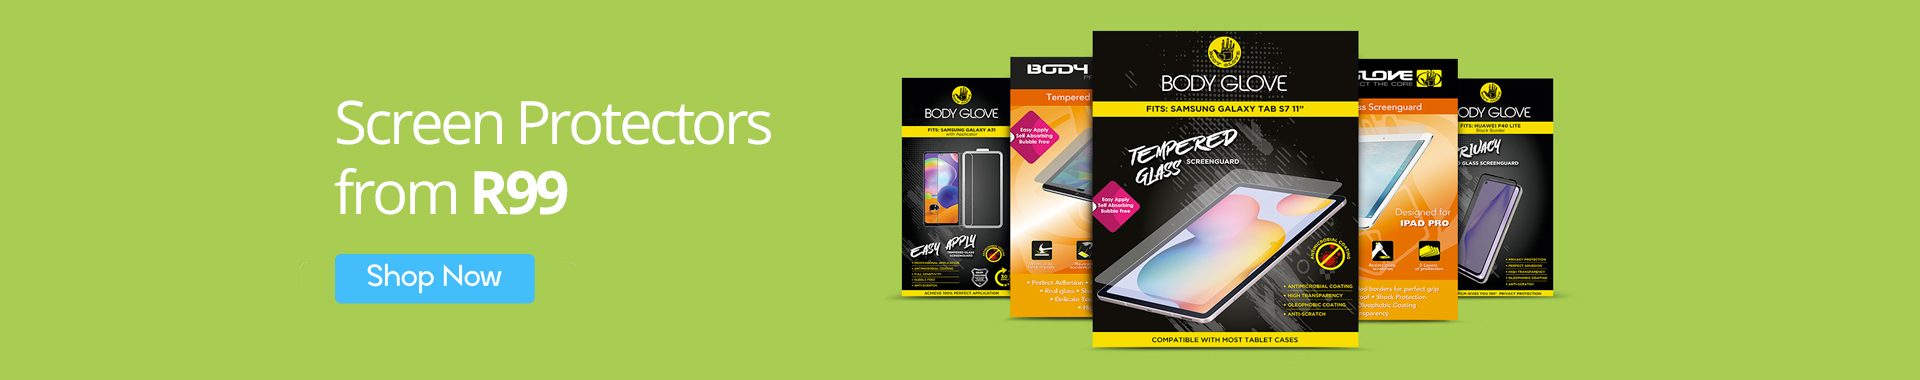 Screen Protectors from R99 only on MondoShop.co.za